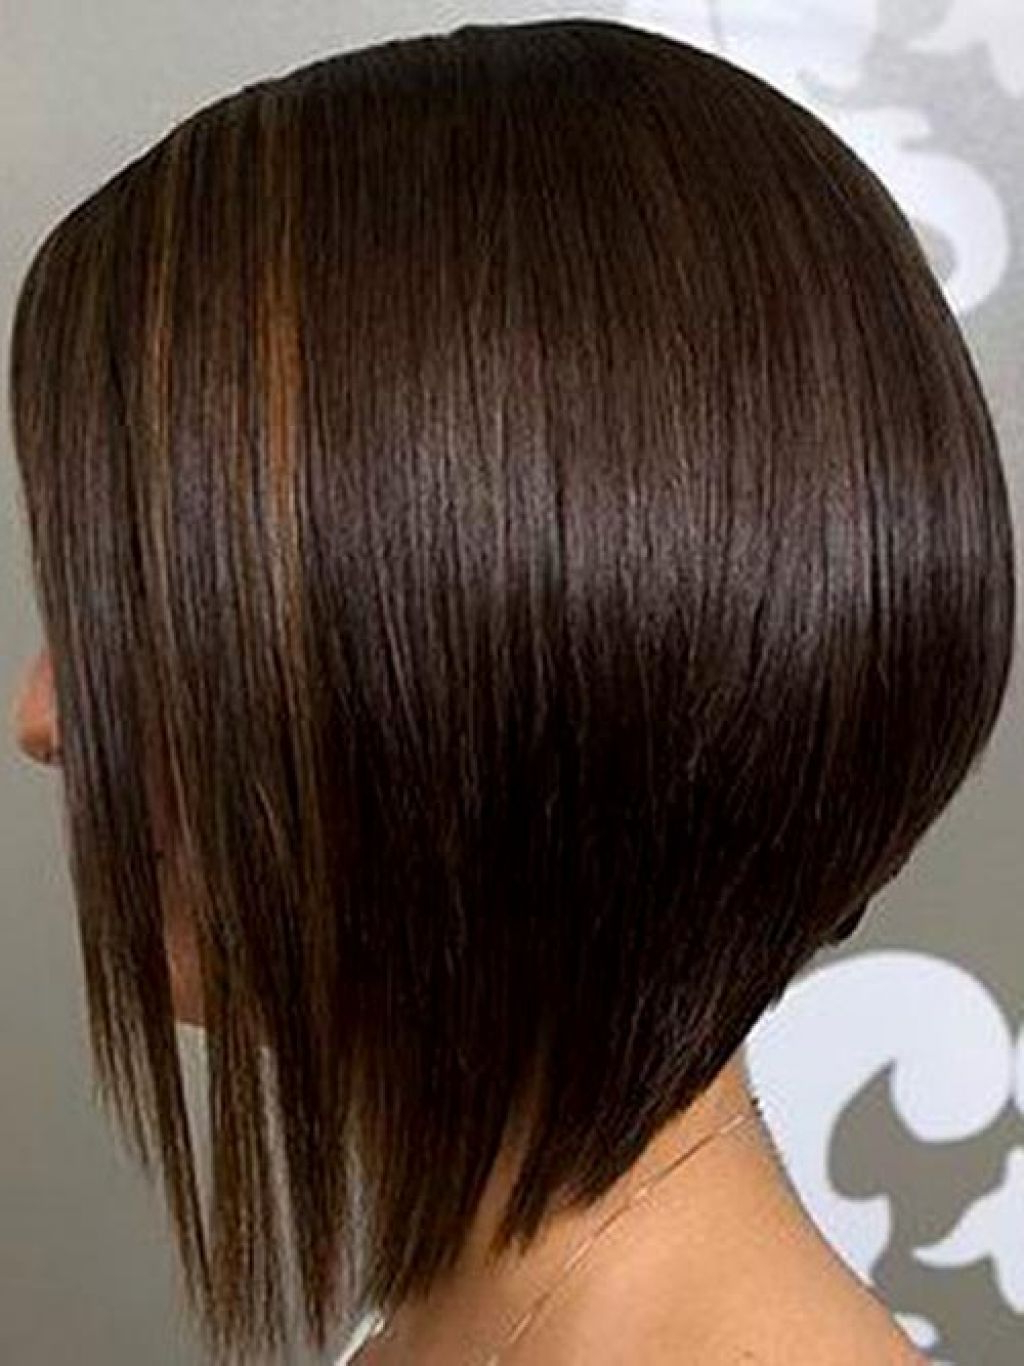 Short Hairstyles: 15 Cutest Short Haircuts For Women In 2017 In Short Bob Hairstyles With Tapered Back (View 15 of 20)